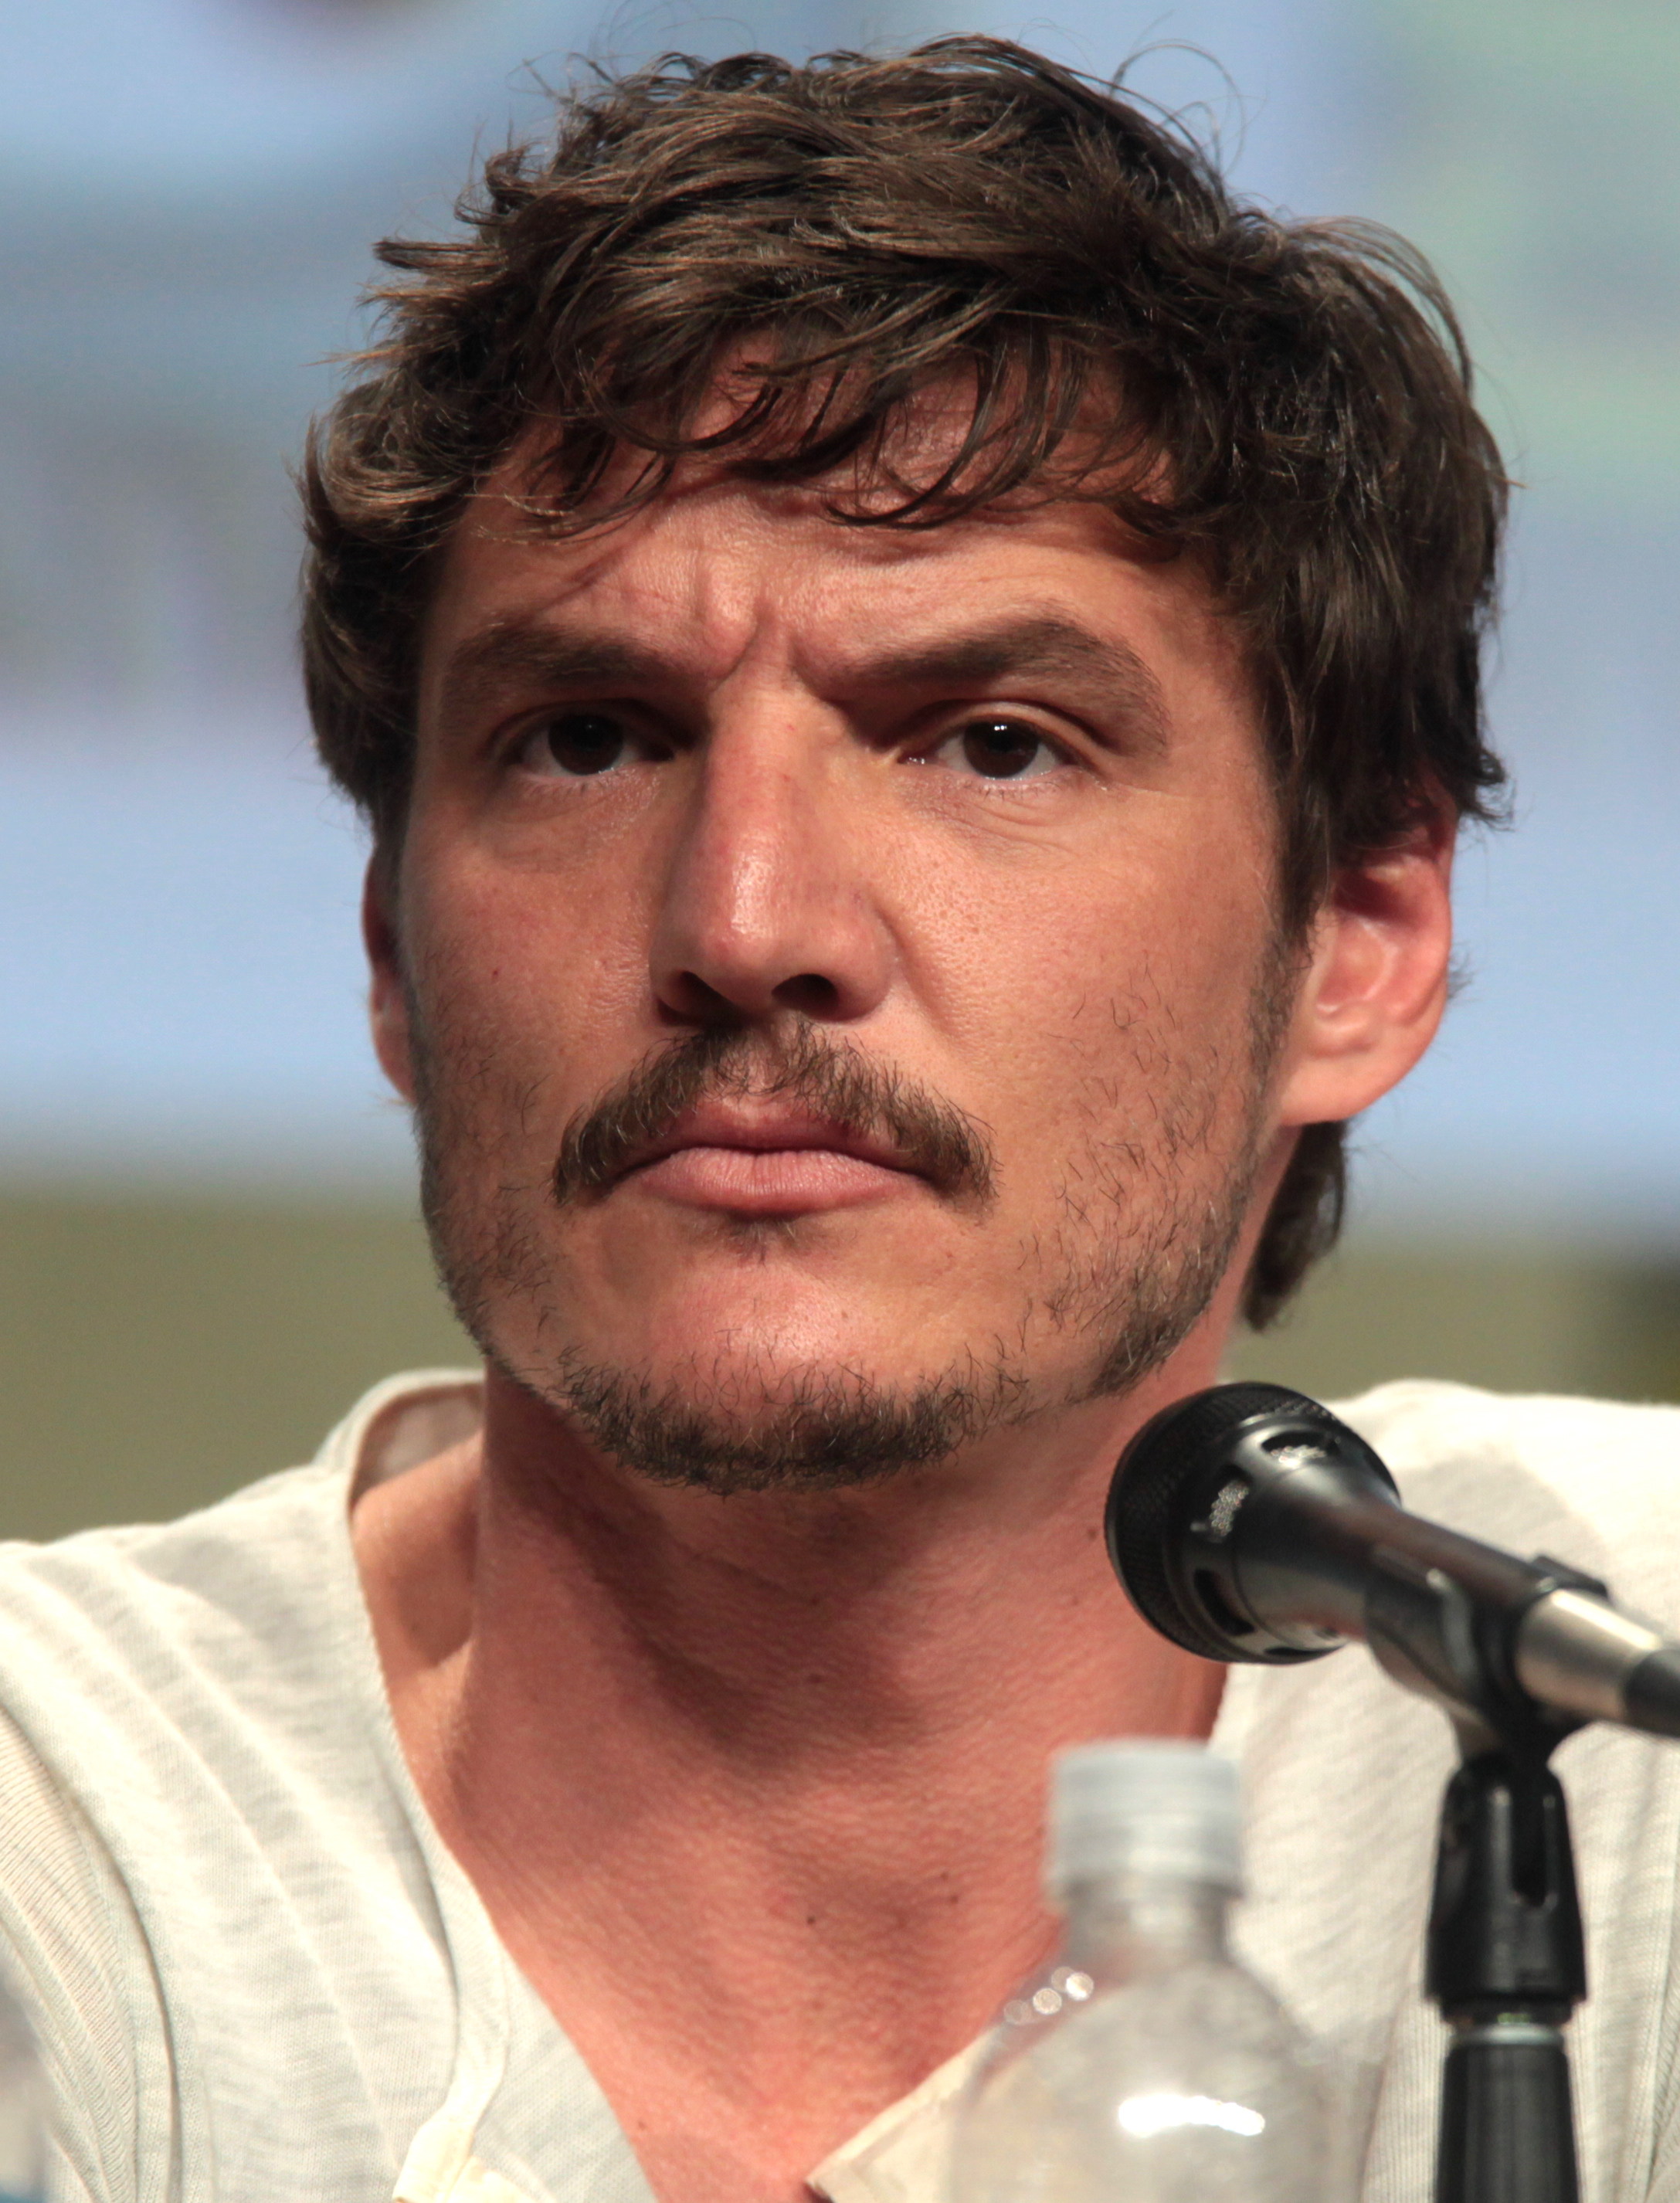 Pedro Pascal earned a  million dollar salary - leaving the net worth at 2 million in 2018